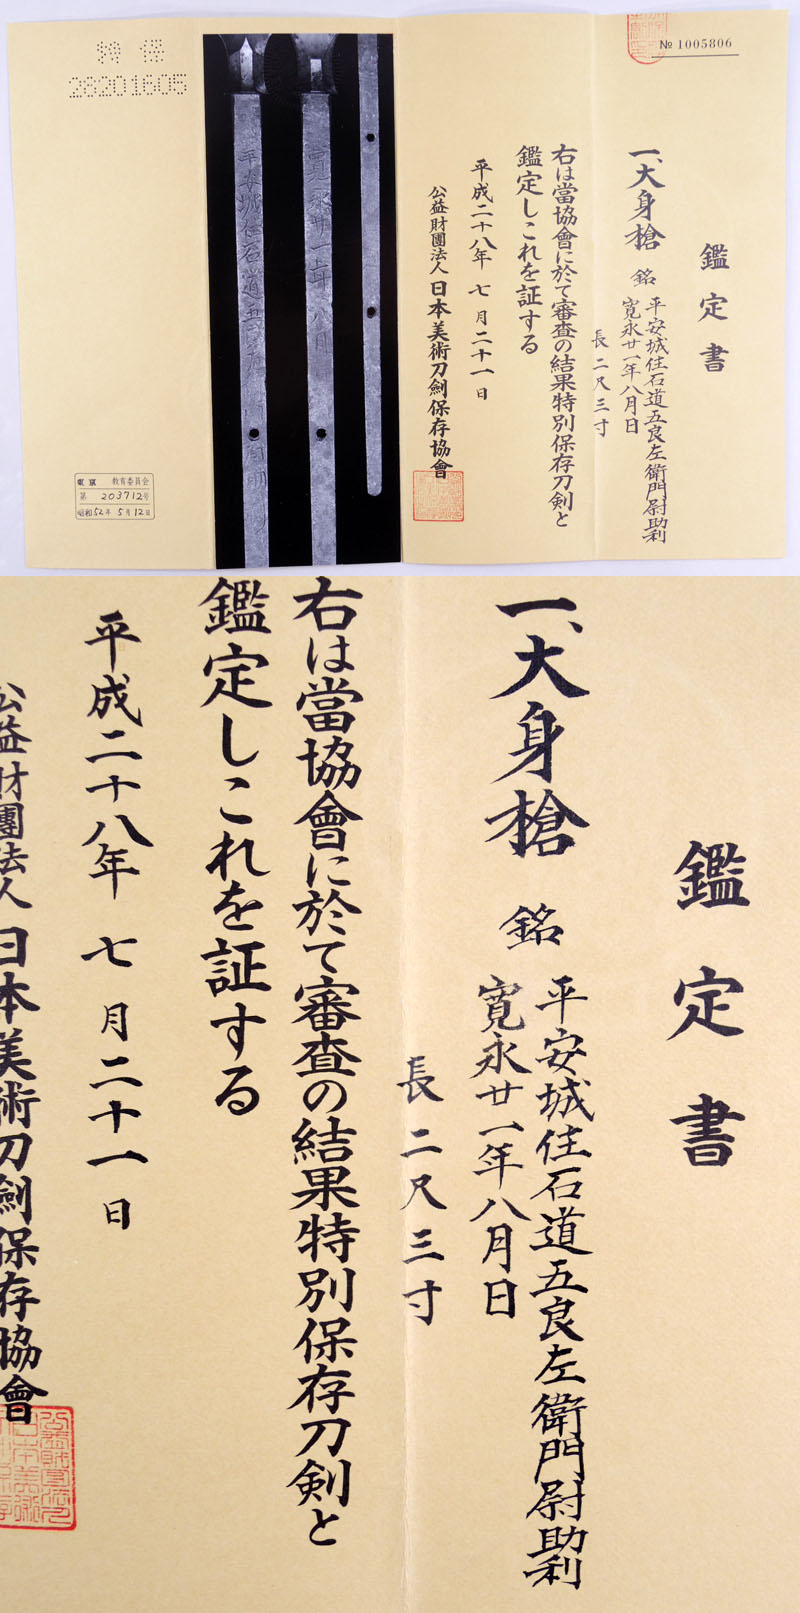 平安城住石道五良左衛門尉助利 Picture of Certificate